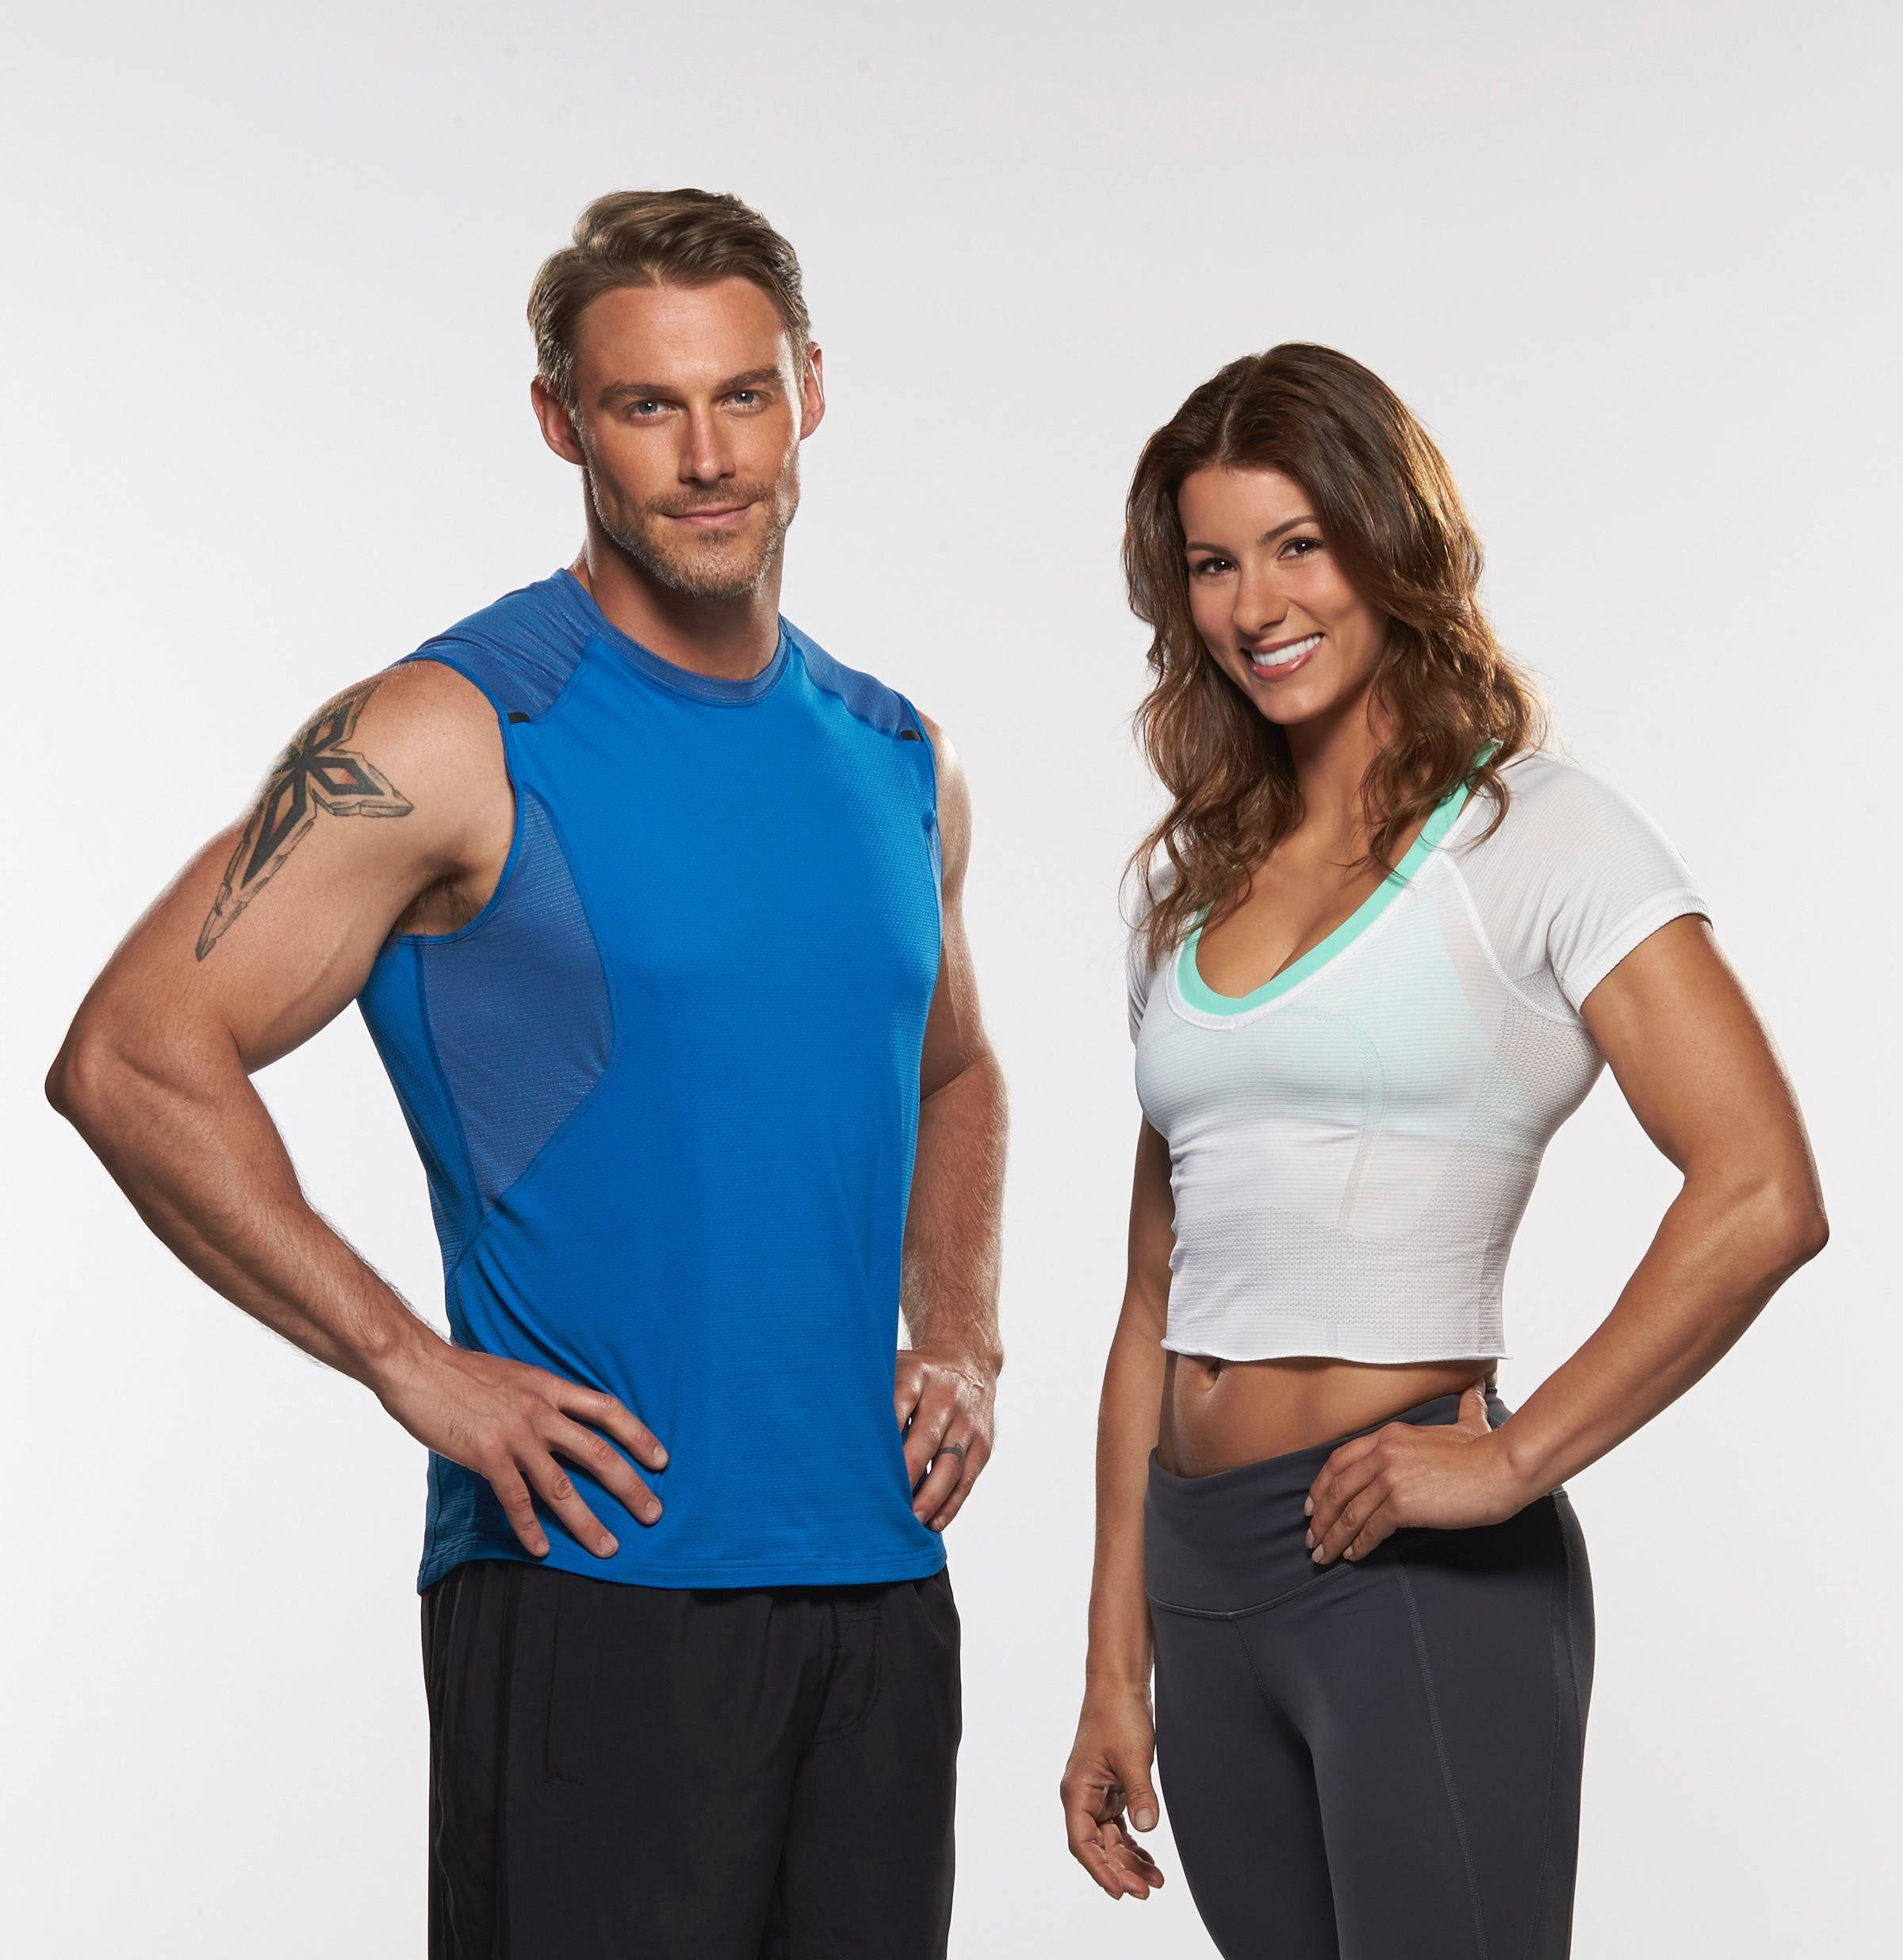 Lisle native to replace Jillian Michaels on 'Biggest Loser'